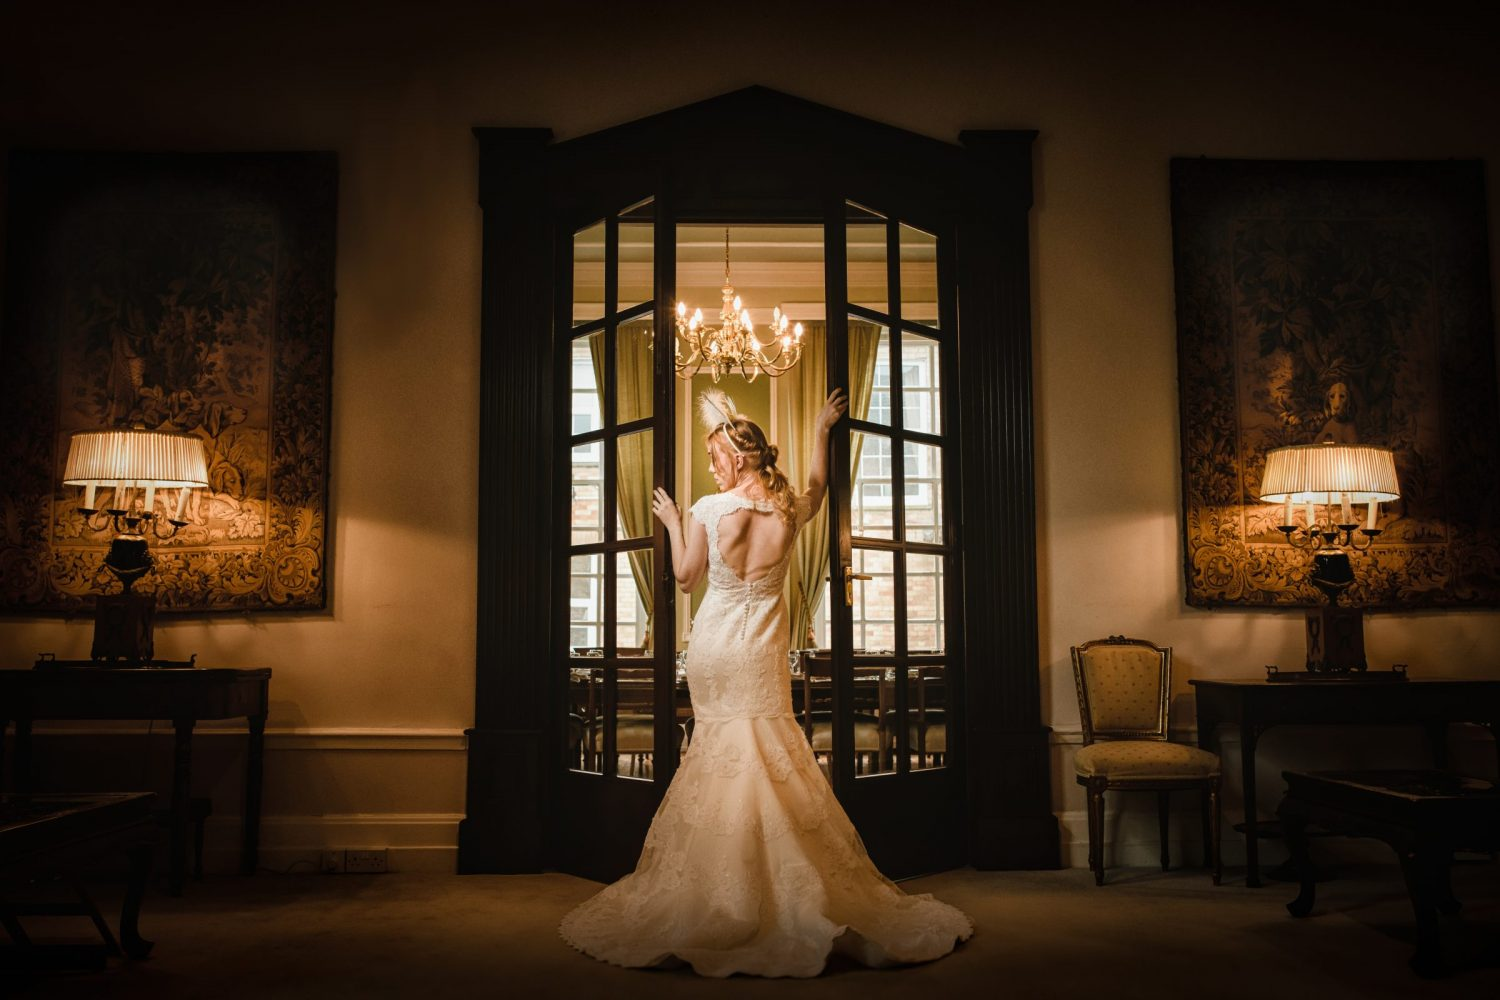 bride inside ceremony room at a Hemswell Court wedding